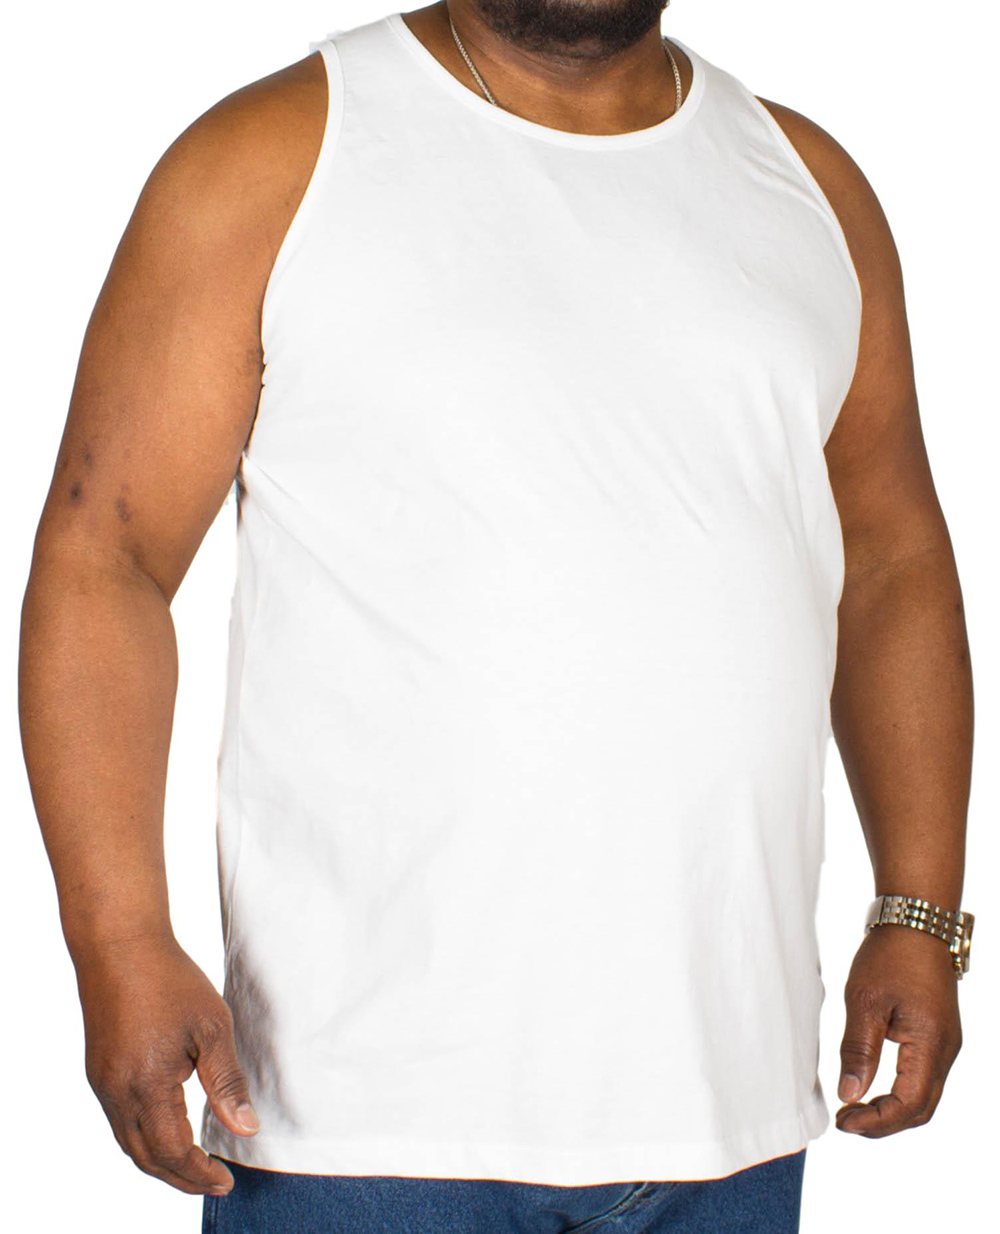 2XL to 6XL Duke D555 tee Mens vest gym top  muscle singlet tank top Sizes